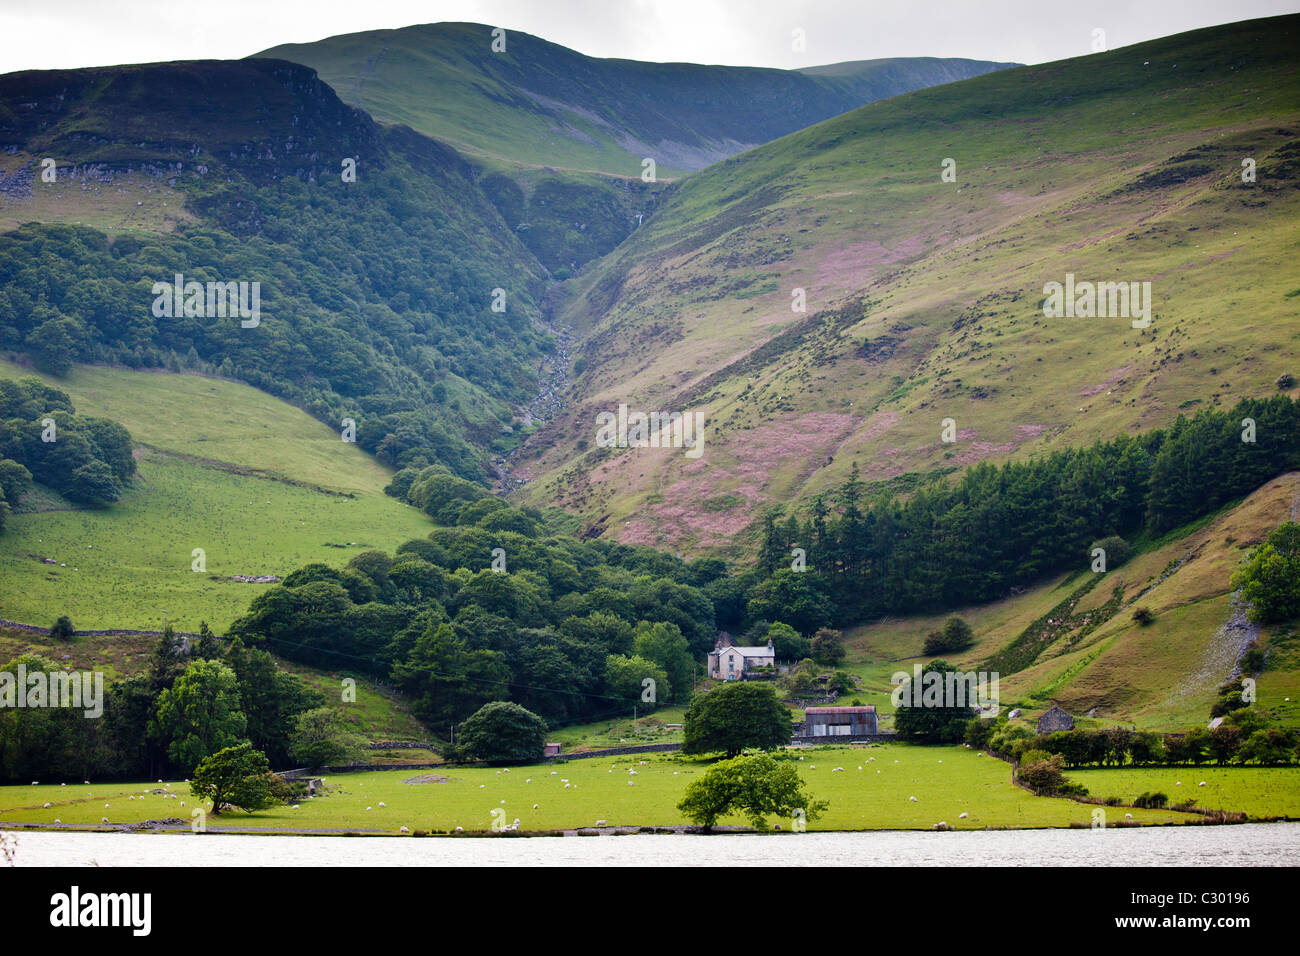 Hill farm on mountain slopes at Tal-Y-LLyn, Snowdonia, Gwynned, Wales - Stock Image